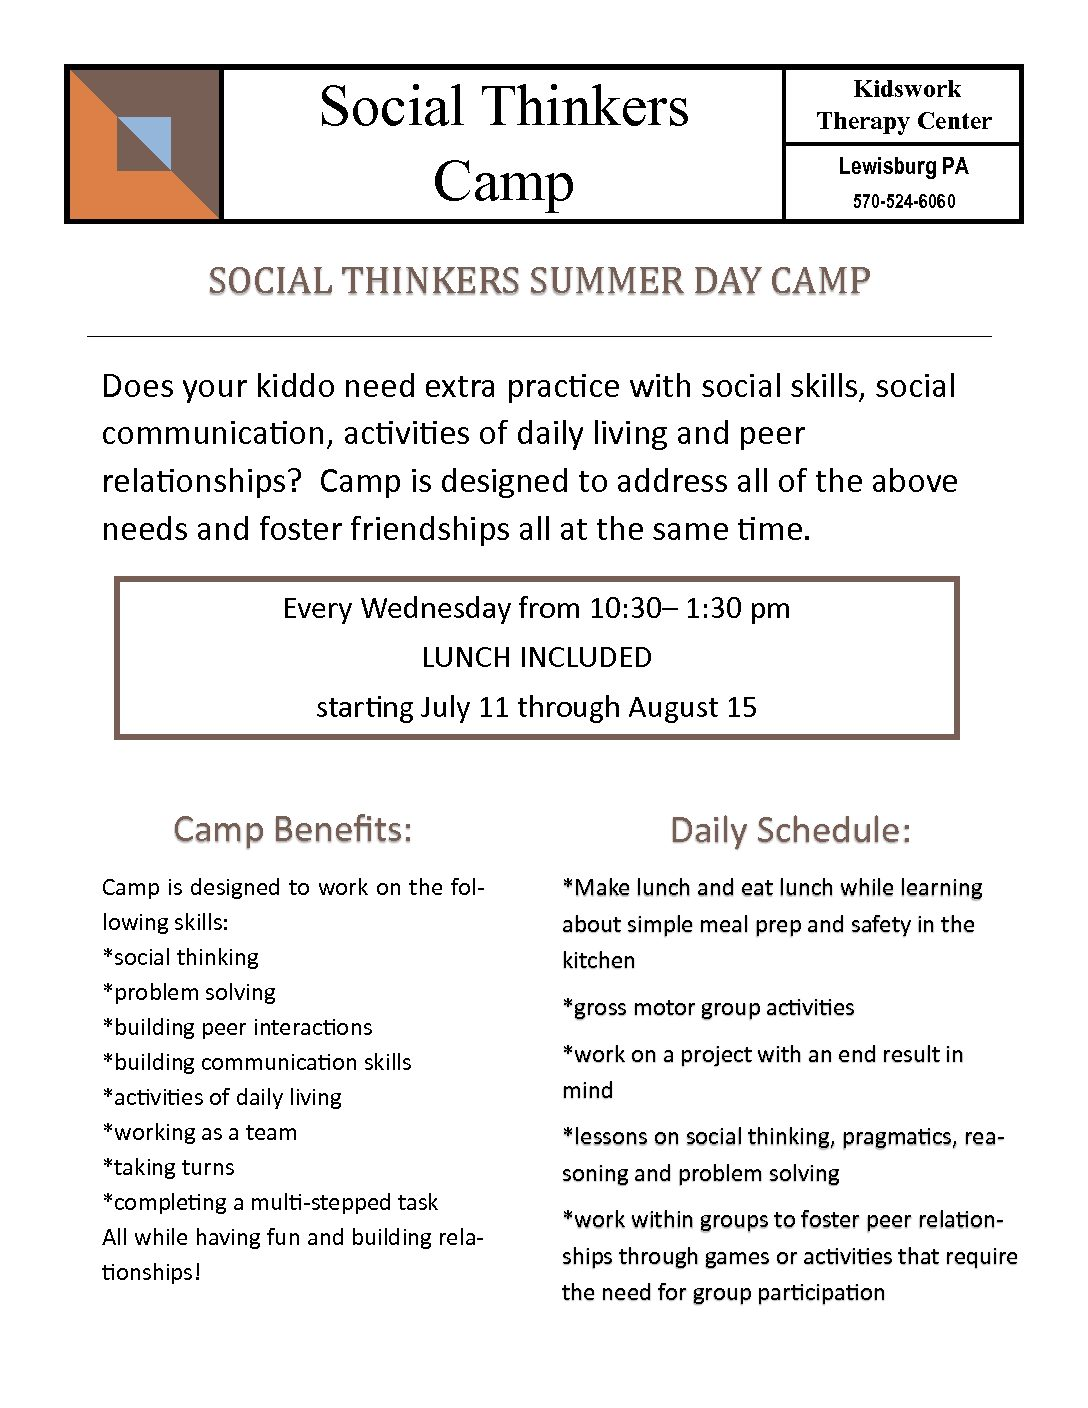 Social Thinkers Camp – Kidswork Therapy Center